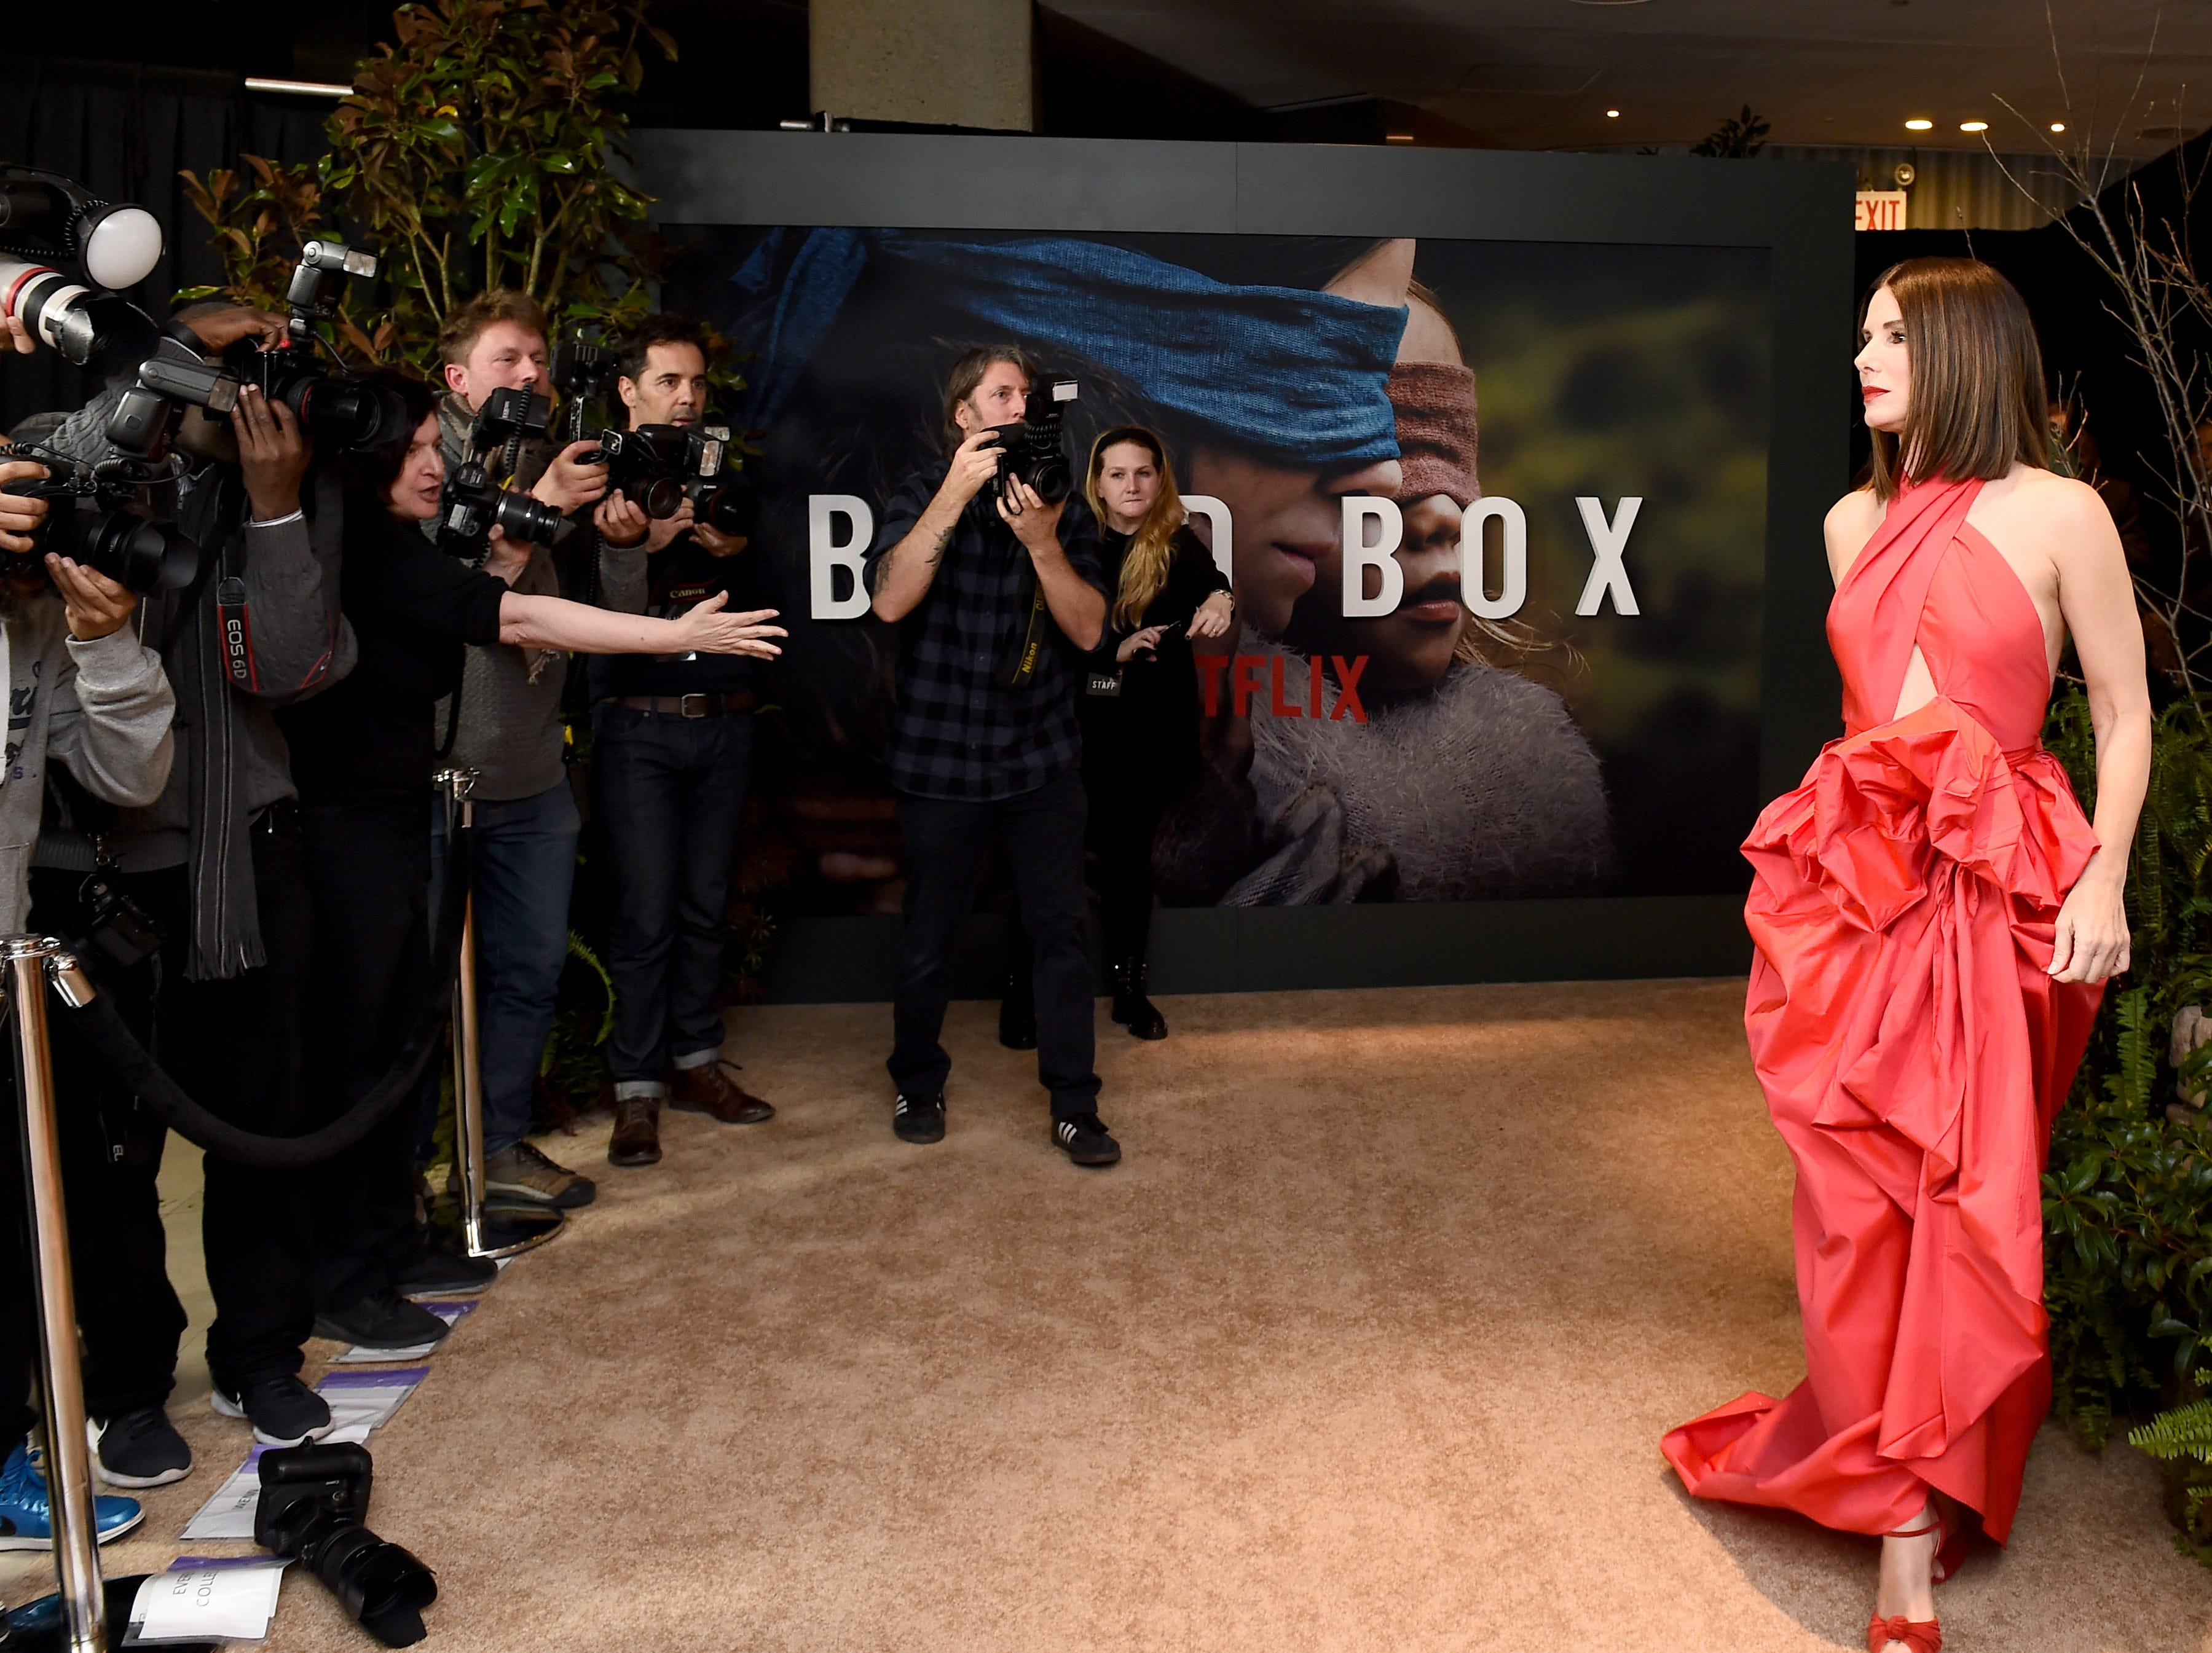 """NEW YORK, NY - DECEMBER 17:  Sandra Bullock attends the New York Special Screening Of The Netflix Film """"BIRD BOX"""" at Alice Tully Hall on December 17, 2018 in New York City.  (Photo by Ilya S. Savenok/Getty Images for Netflix) ORG XMIT: 775270119 ORIG FILE ID: 1074346406"""